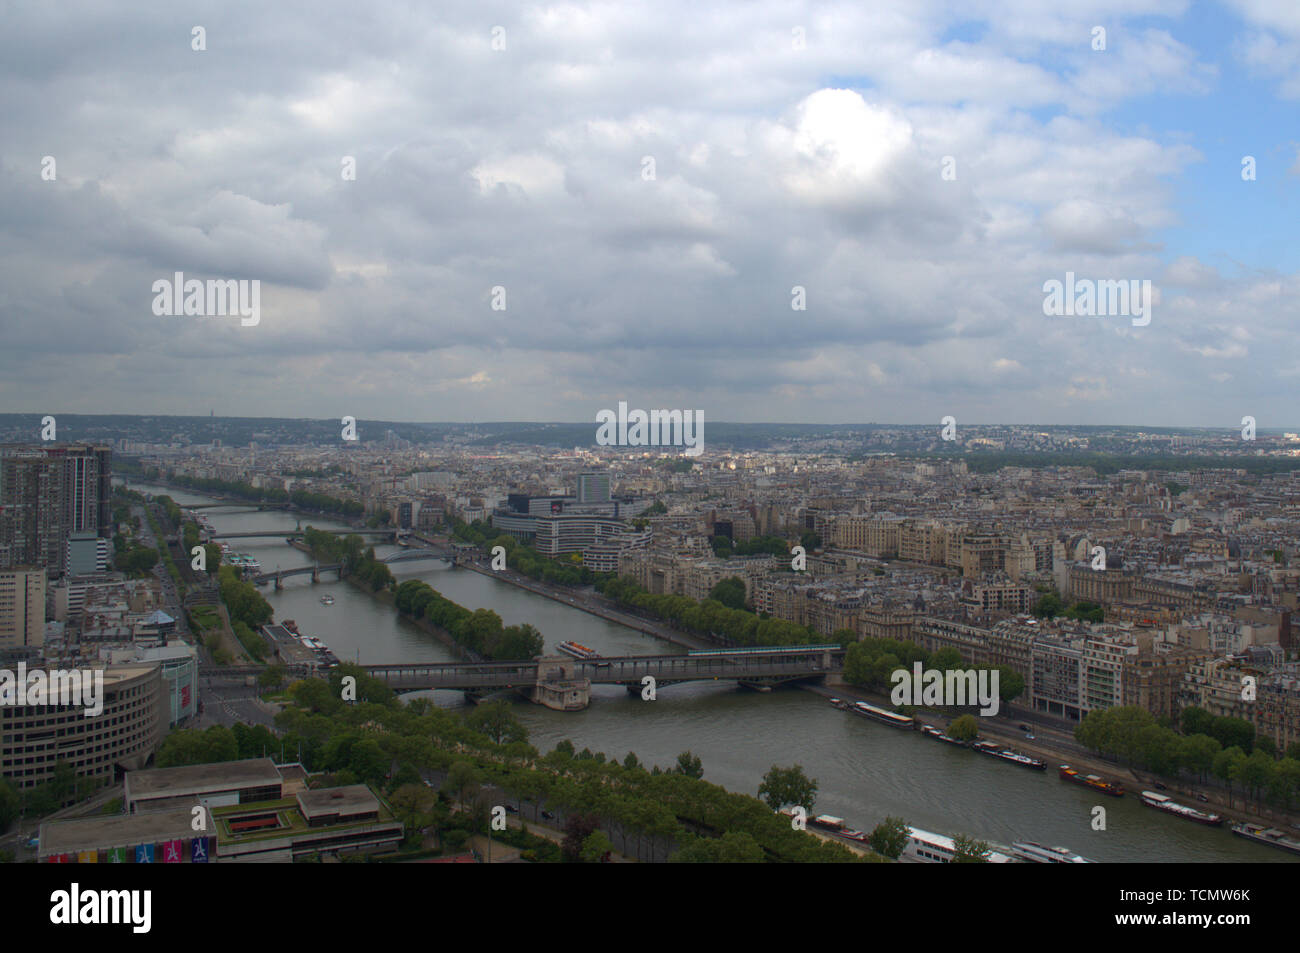 View of the city of Paris, the Seine river and the Island of the Swans, from the second platform of the Eiffel Tower, heading west. Stock Photo